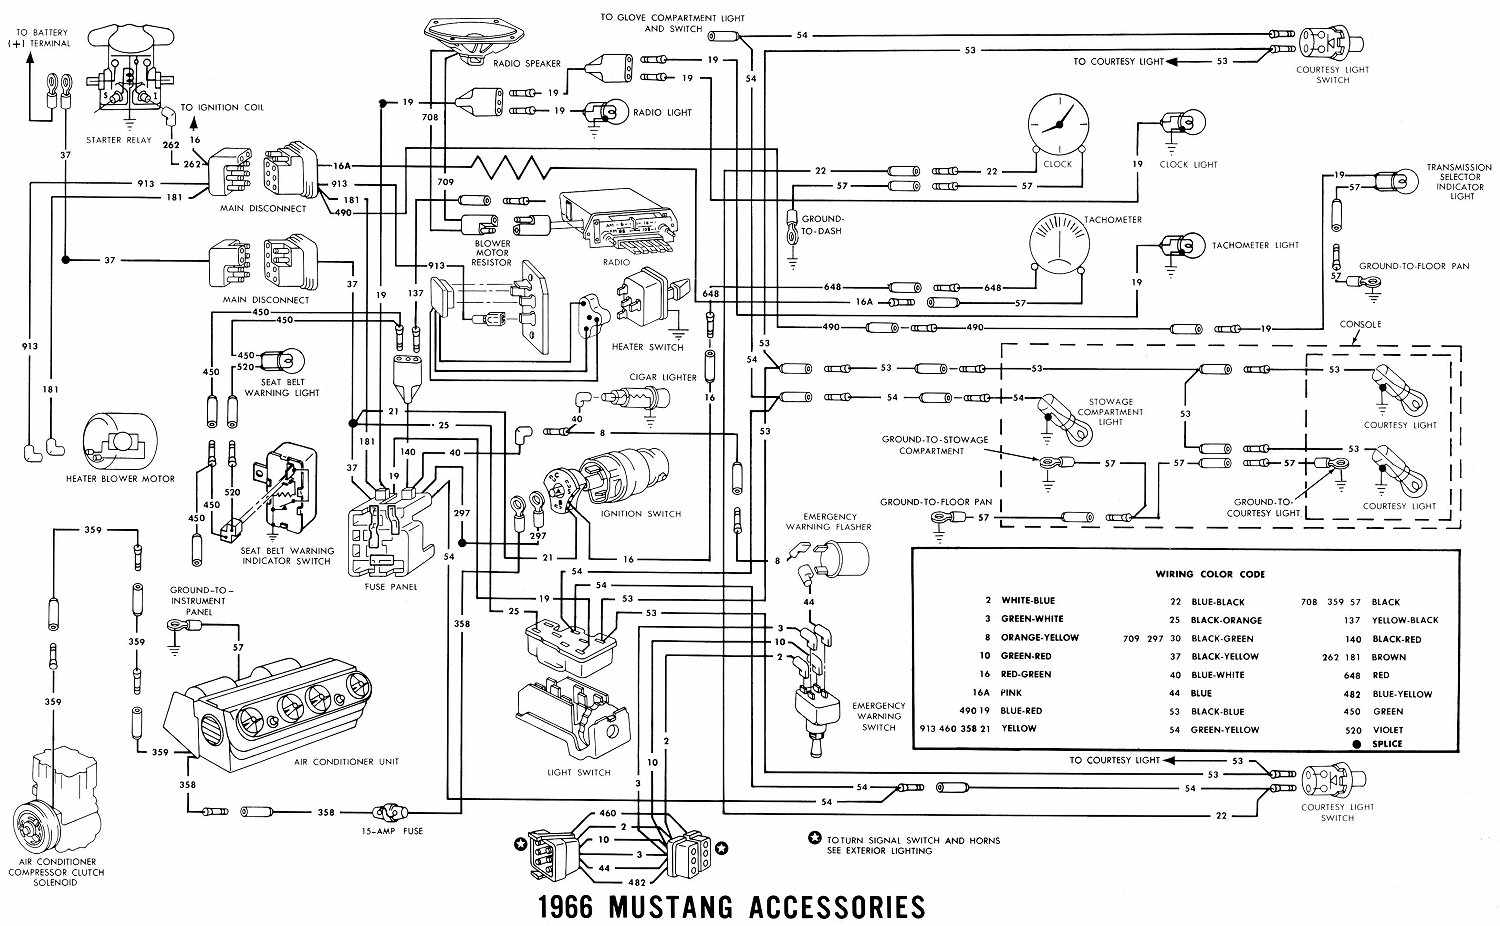 wiring diagram mitsubishi l300 easy wiring diagrams 3 way switch wiring diagram l300 wiring diagram [ 1500 x 926 Pixel ]